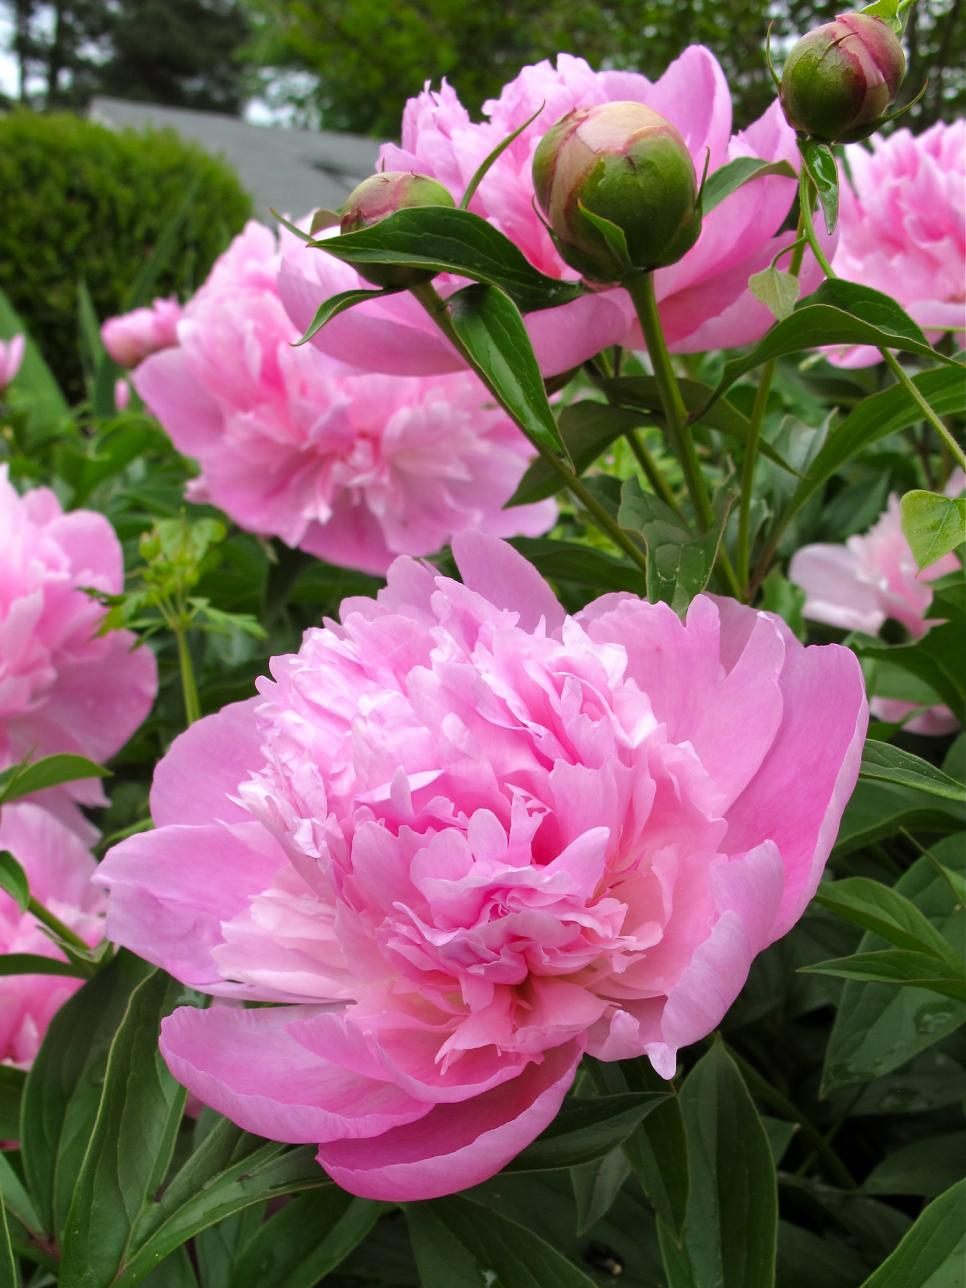 Perennial plants for winter spring perennial flowers hgtv - Growing peonies in the garden ...